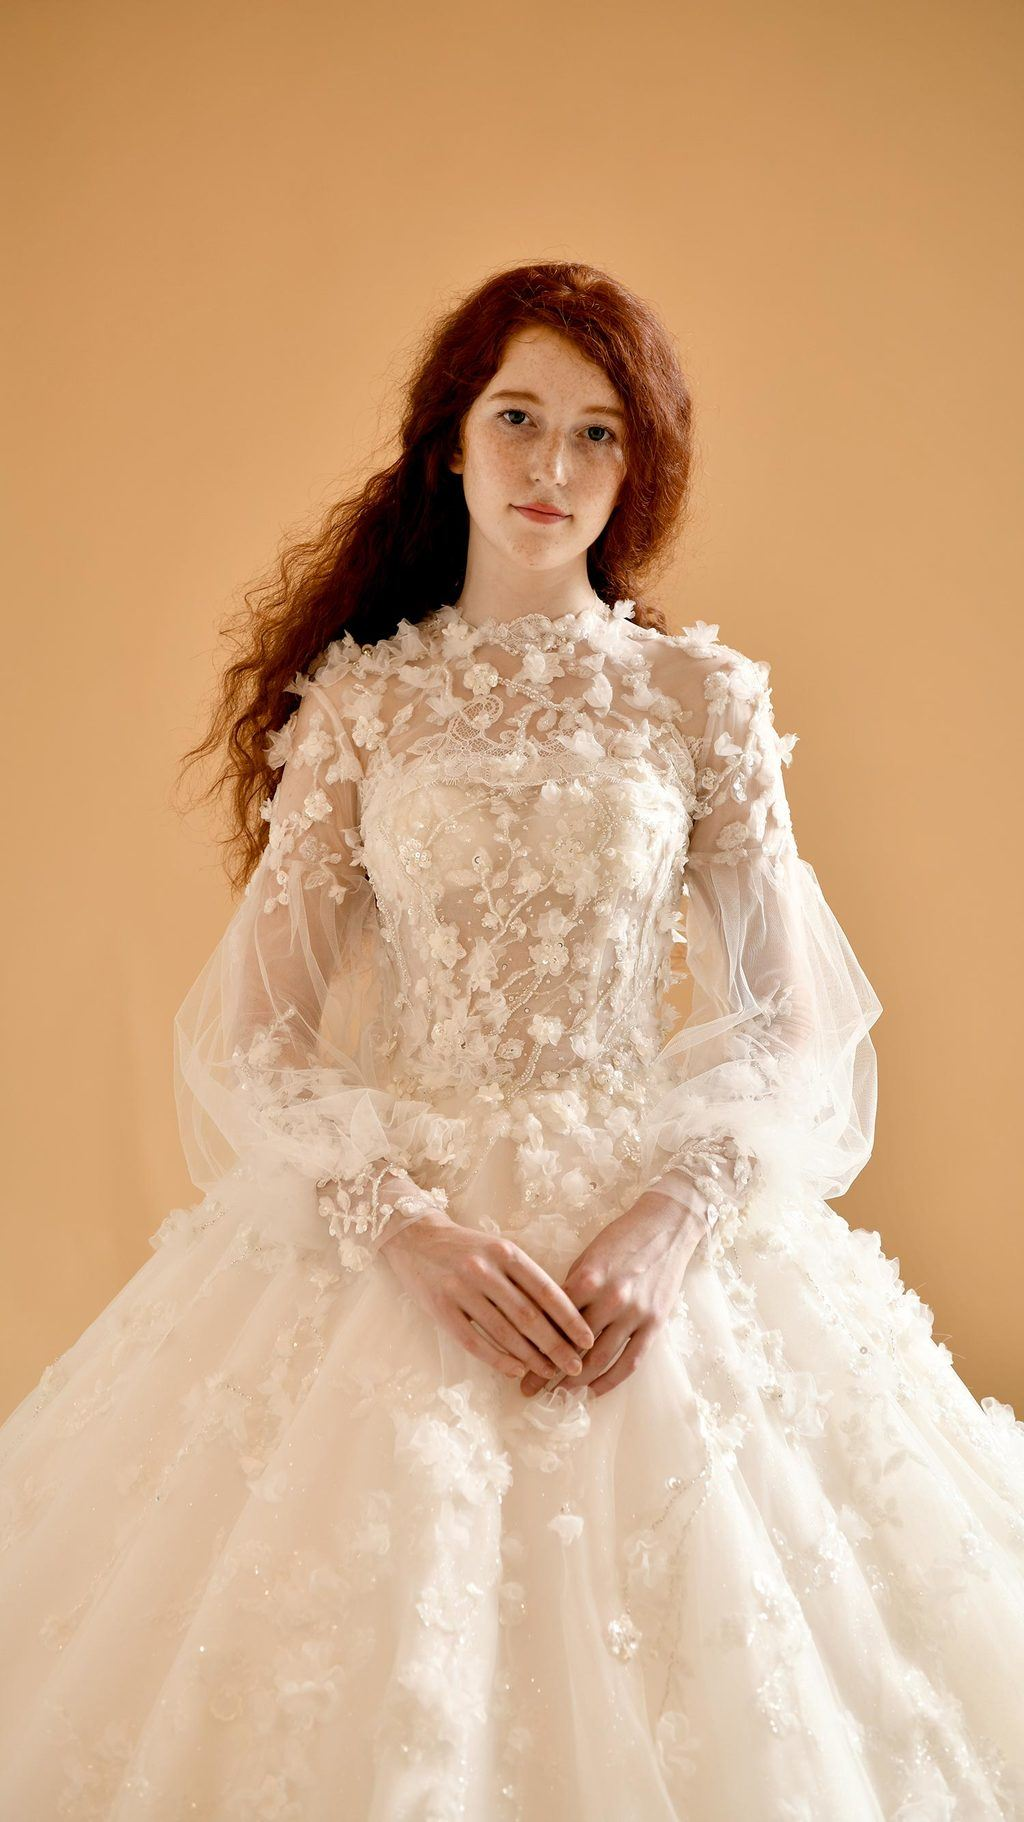 peasant sleeve wedding dress with floral appliques and a high neck